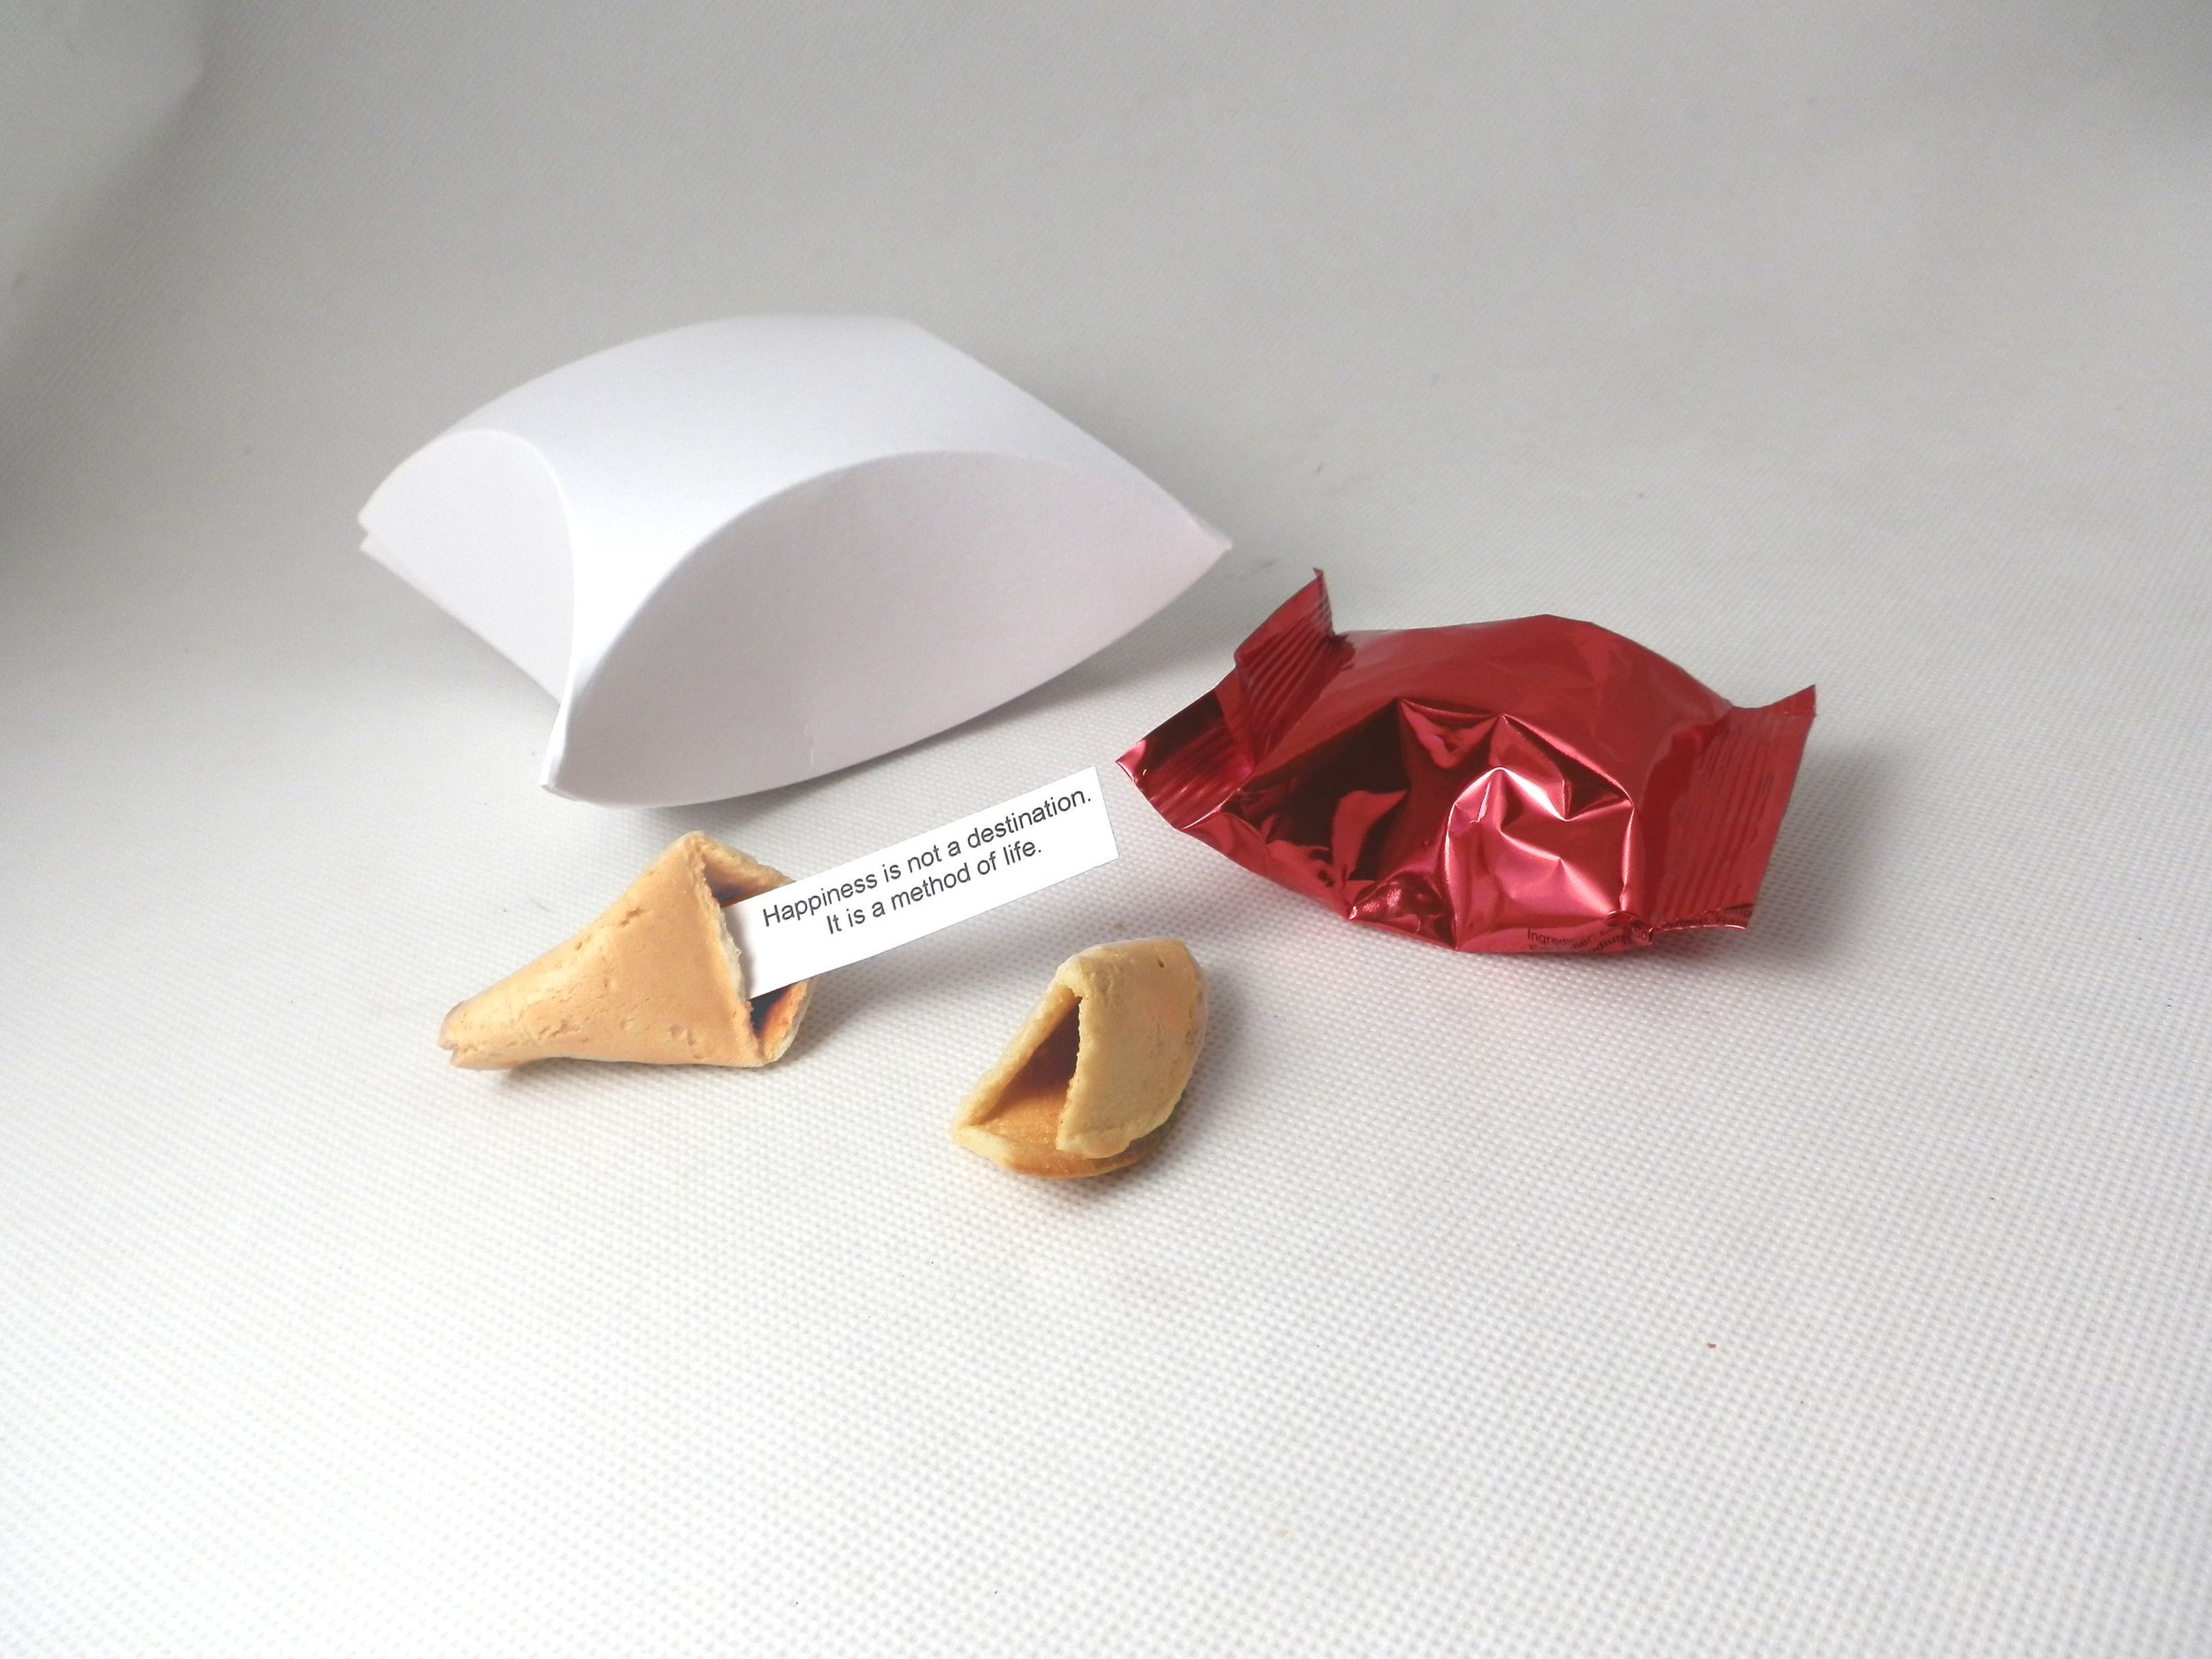 pillow design individual fortune cookie presentation boxes